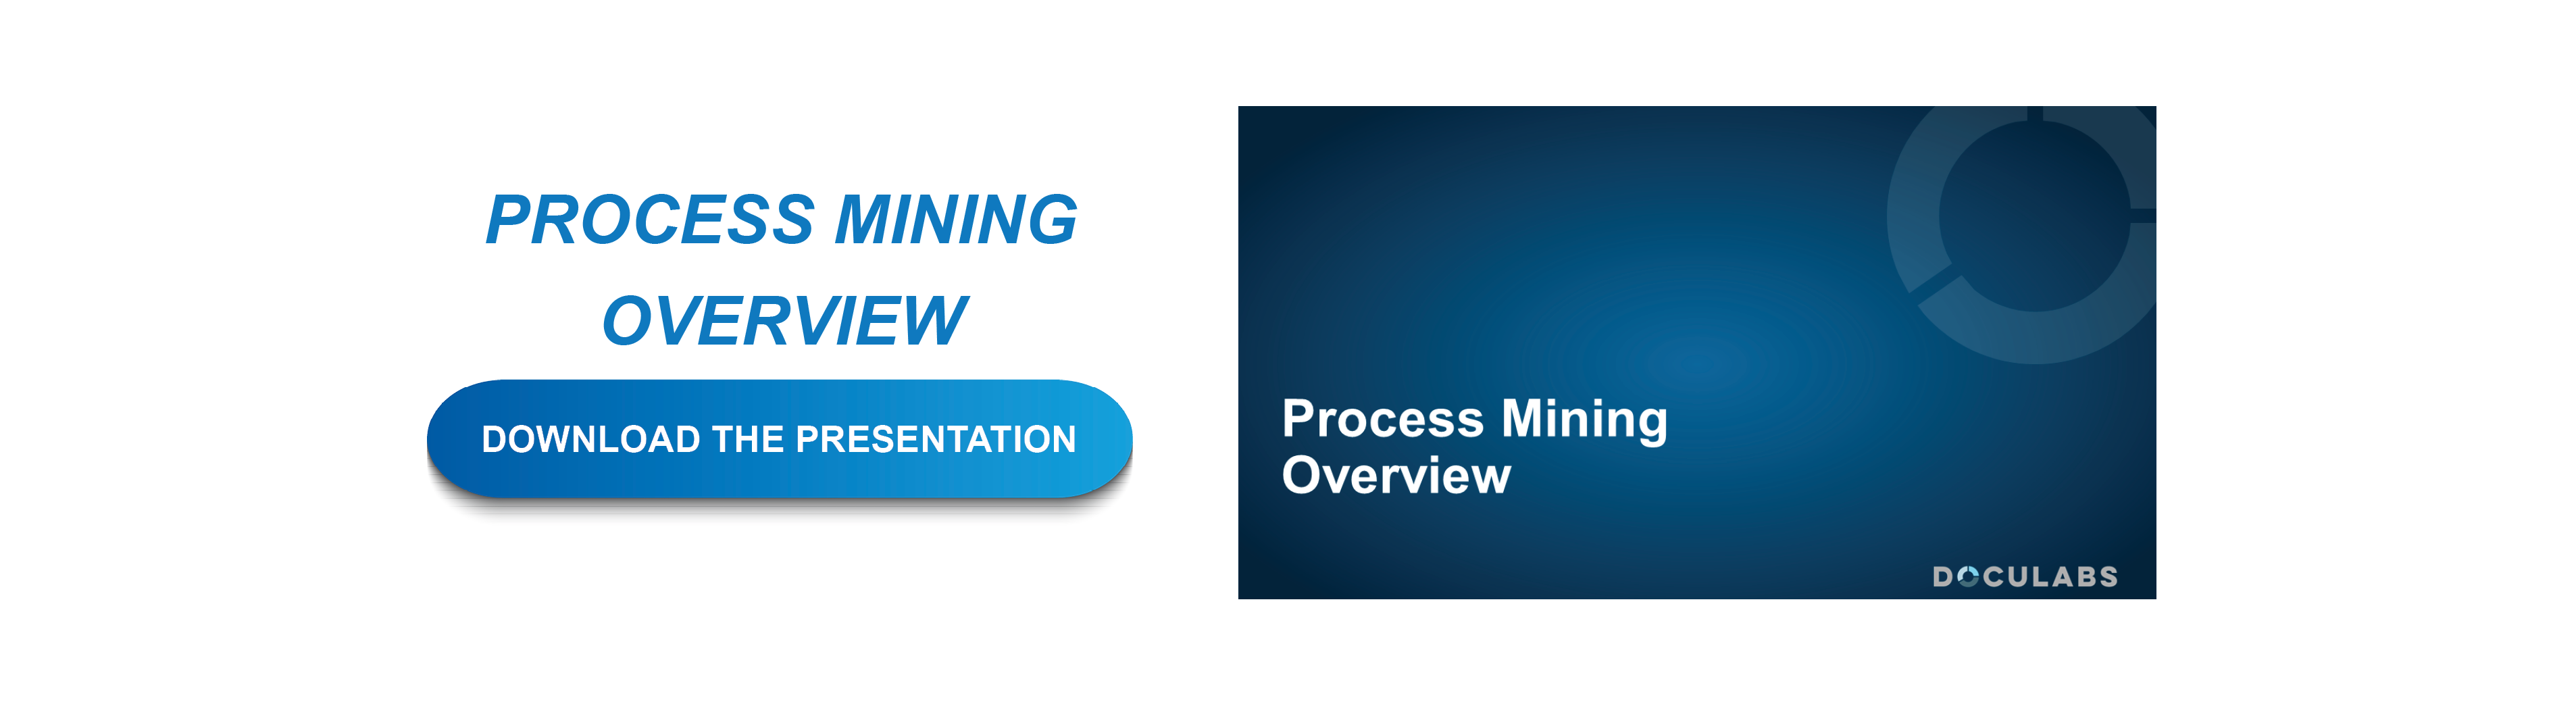 process mining overview presentation image